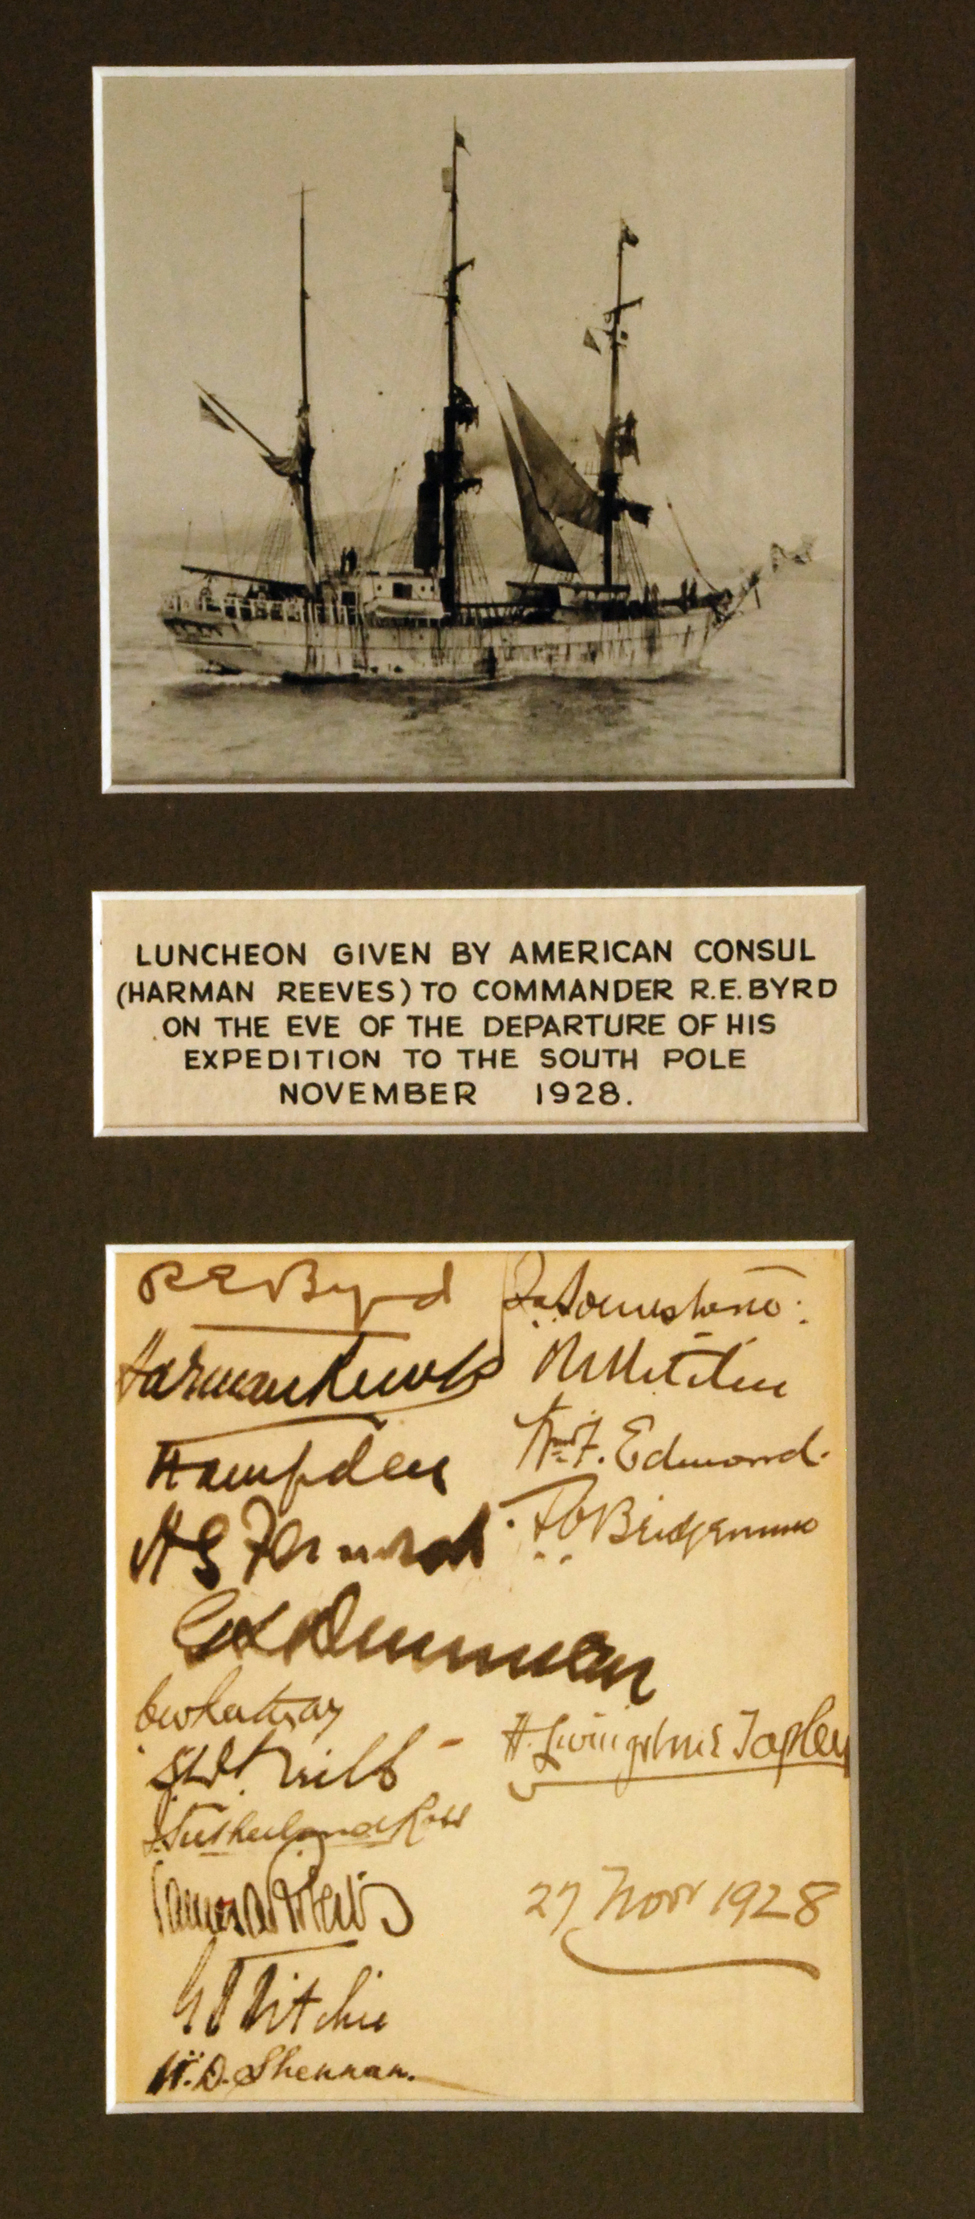 Memento of a Luncheon Given to Commander R. E. Byrd on the Eve of the Departure of his Expedition to the South Pole, Dunedin Club, 27 November 1928.